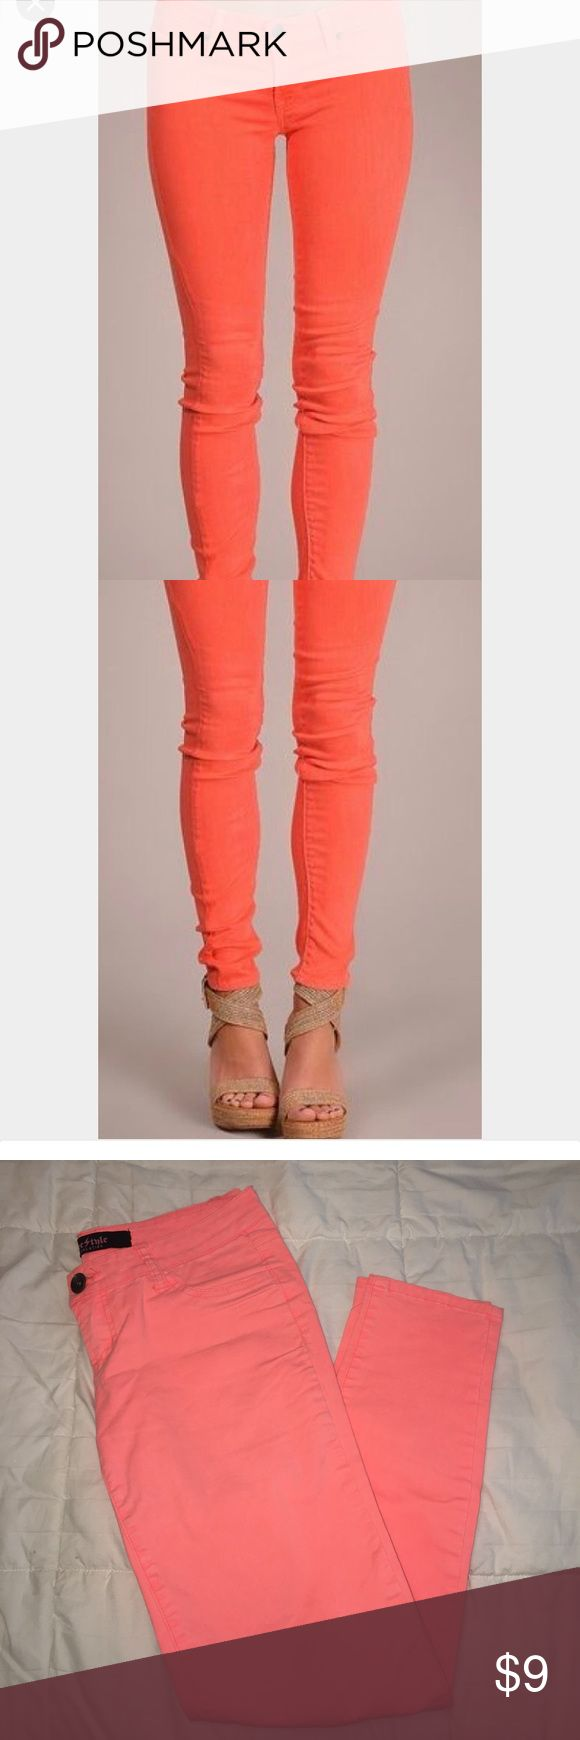 Coral Skinny Jeans In perfect condition- only wore once! Free Style Revolution jeans with skinny fit. Perfect for summer!! Fits 2/4 Jeans Skinny